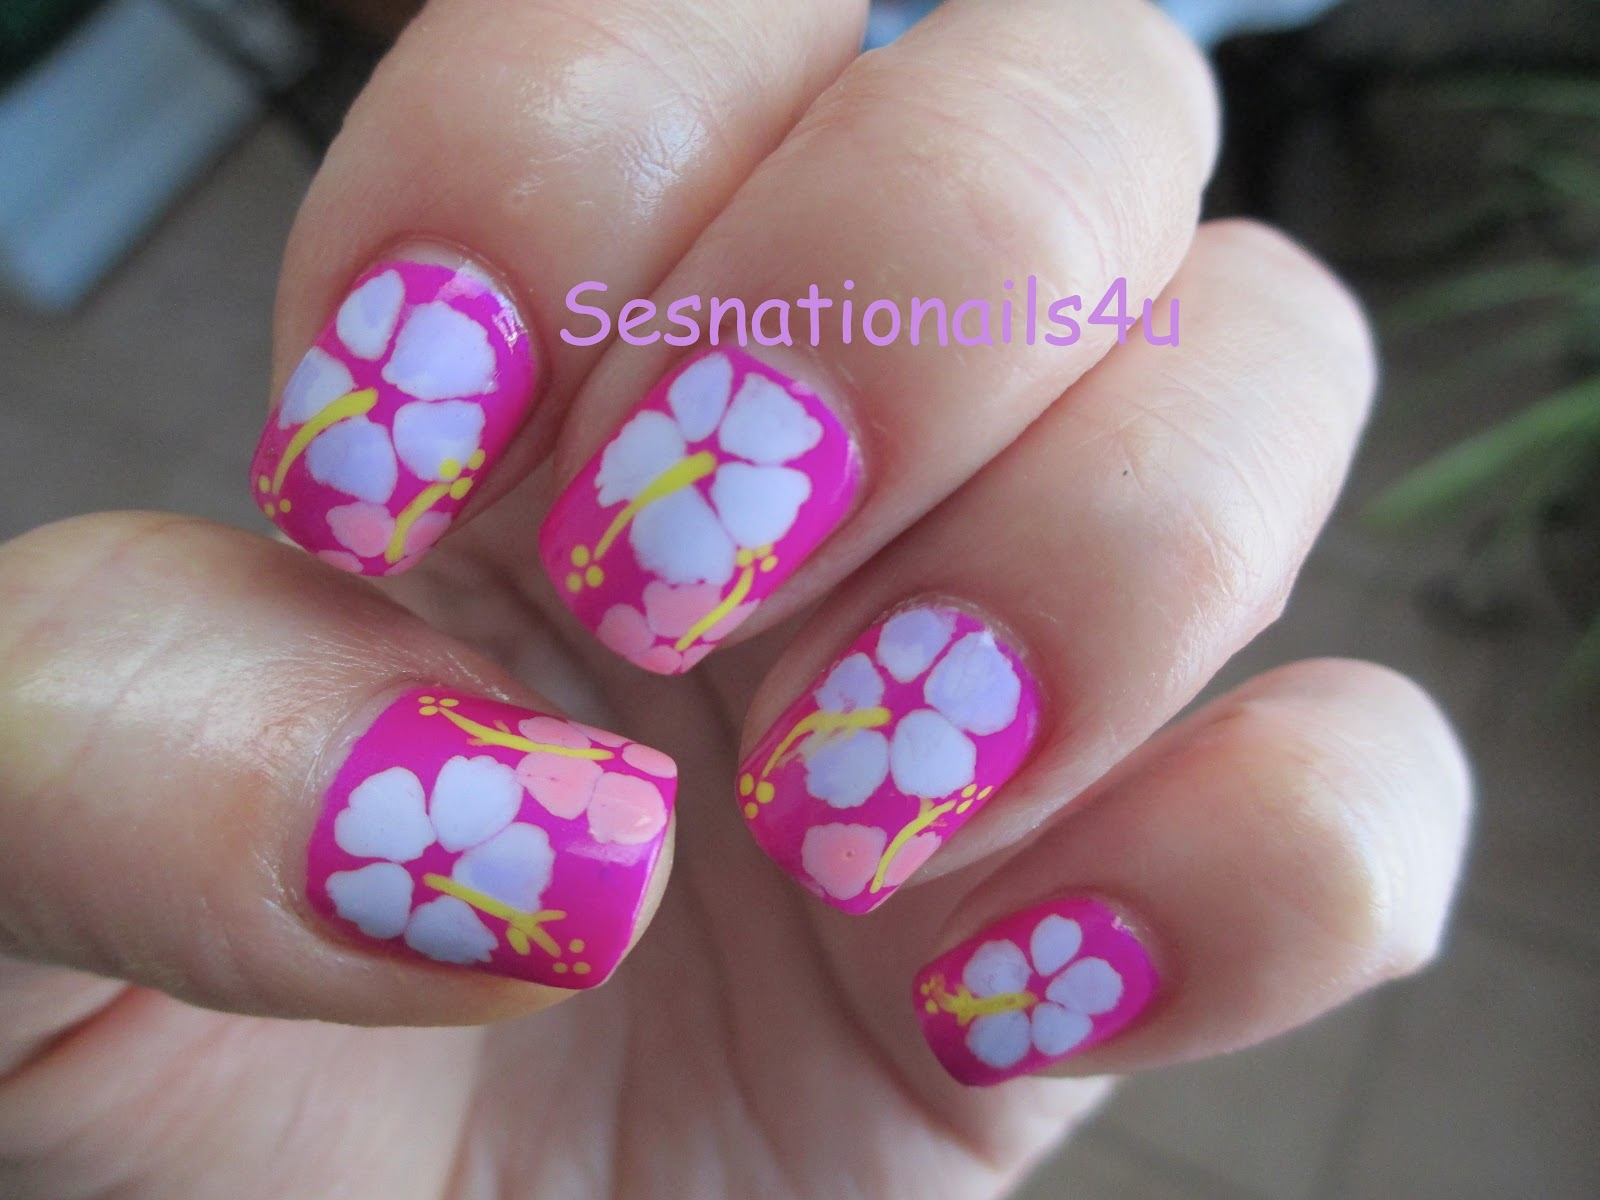 NAILS OF THE WEEK: Hibiscus Nail Art Design